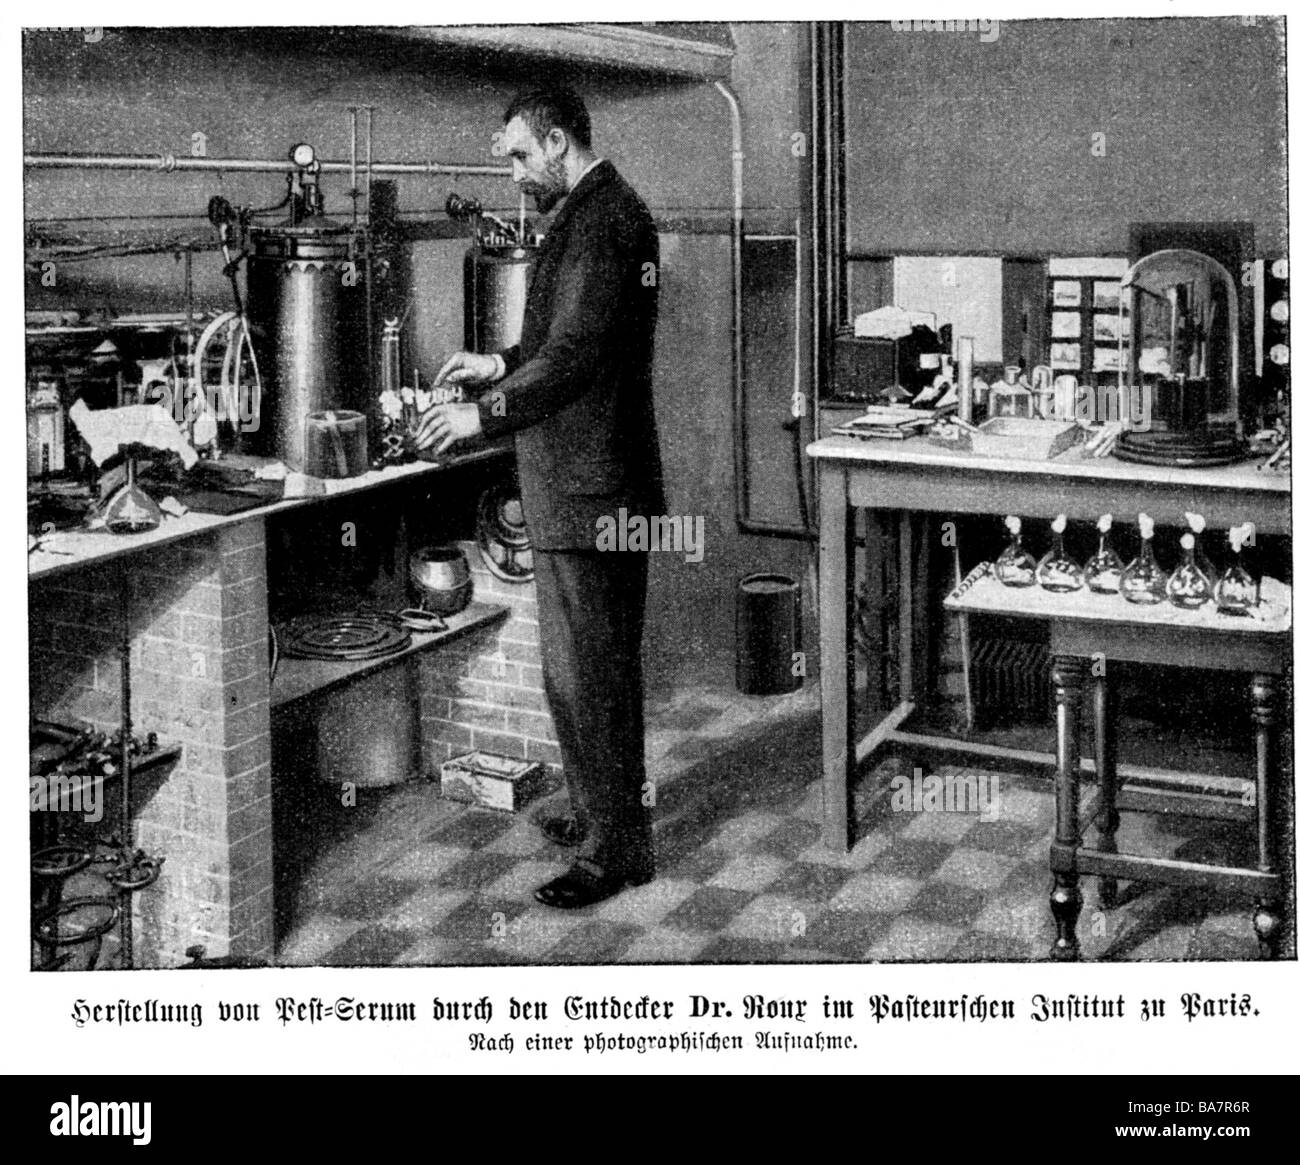 Roux, Pierre Paul Emile, 17.12.1853 - 3.11.1933, French bacteriologist, full length, at his laboratory, producing - Stock Image